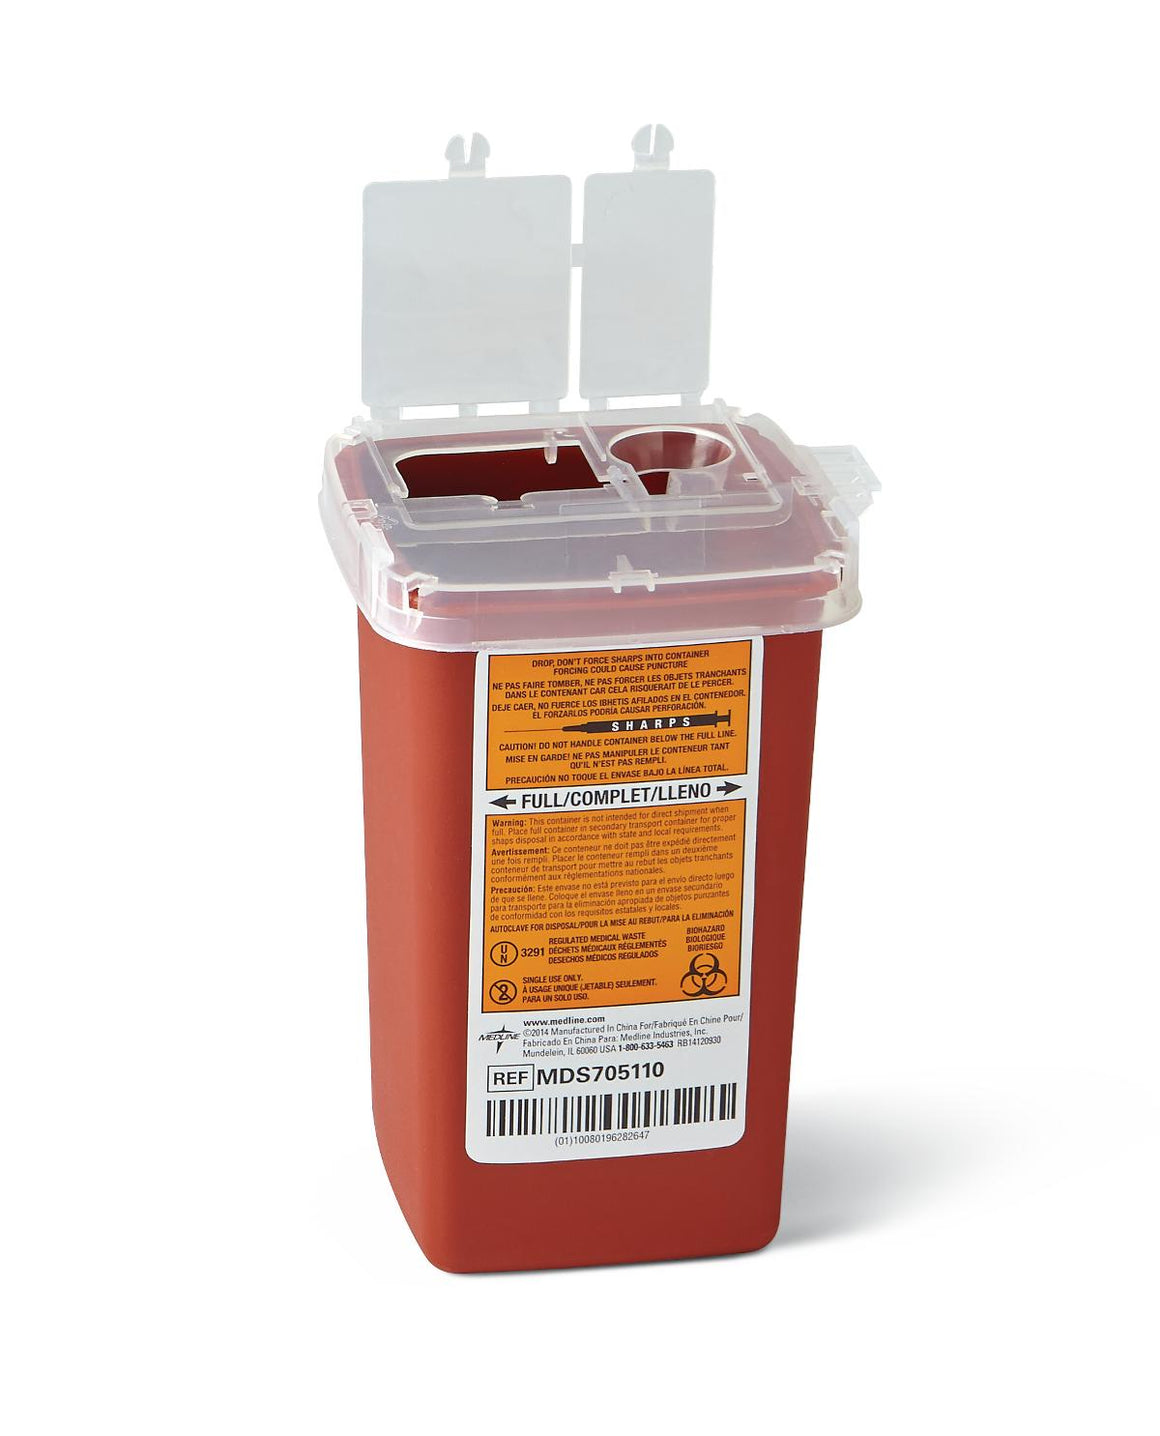 Phlebotomy Sharps Containers,Red,1.000 QT, Case of 100